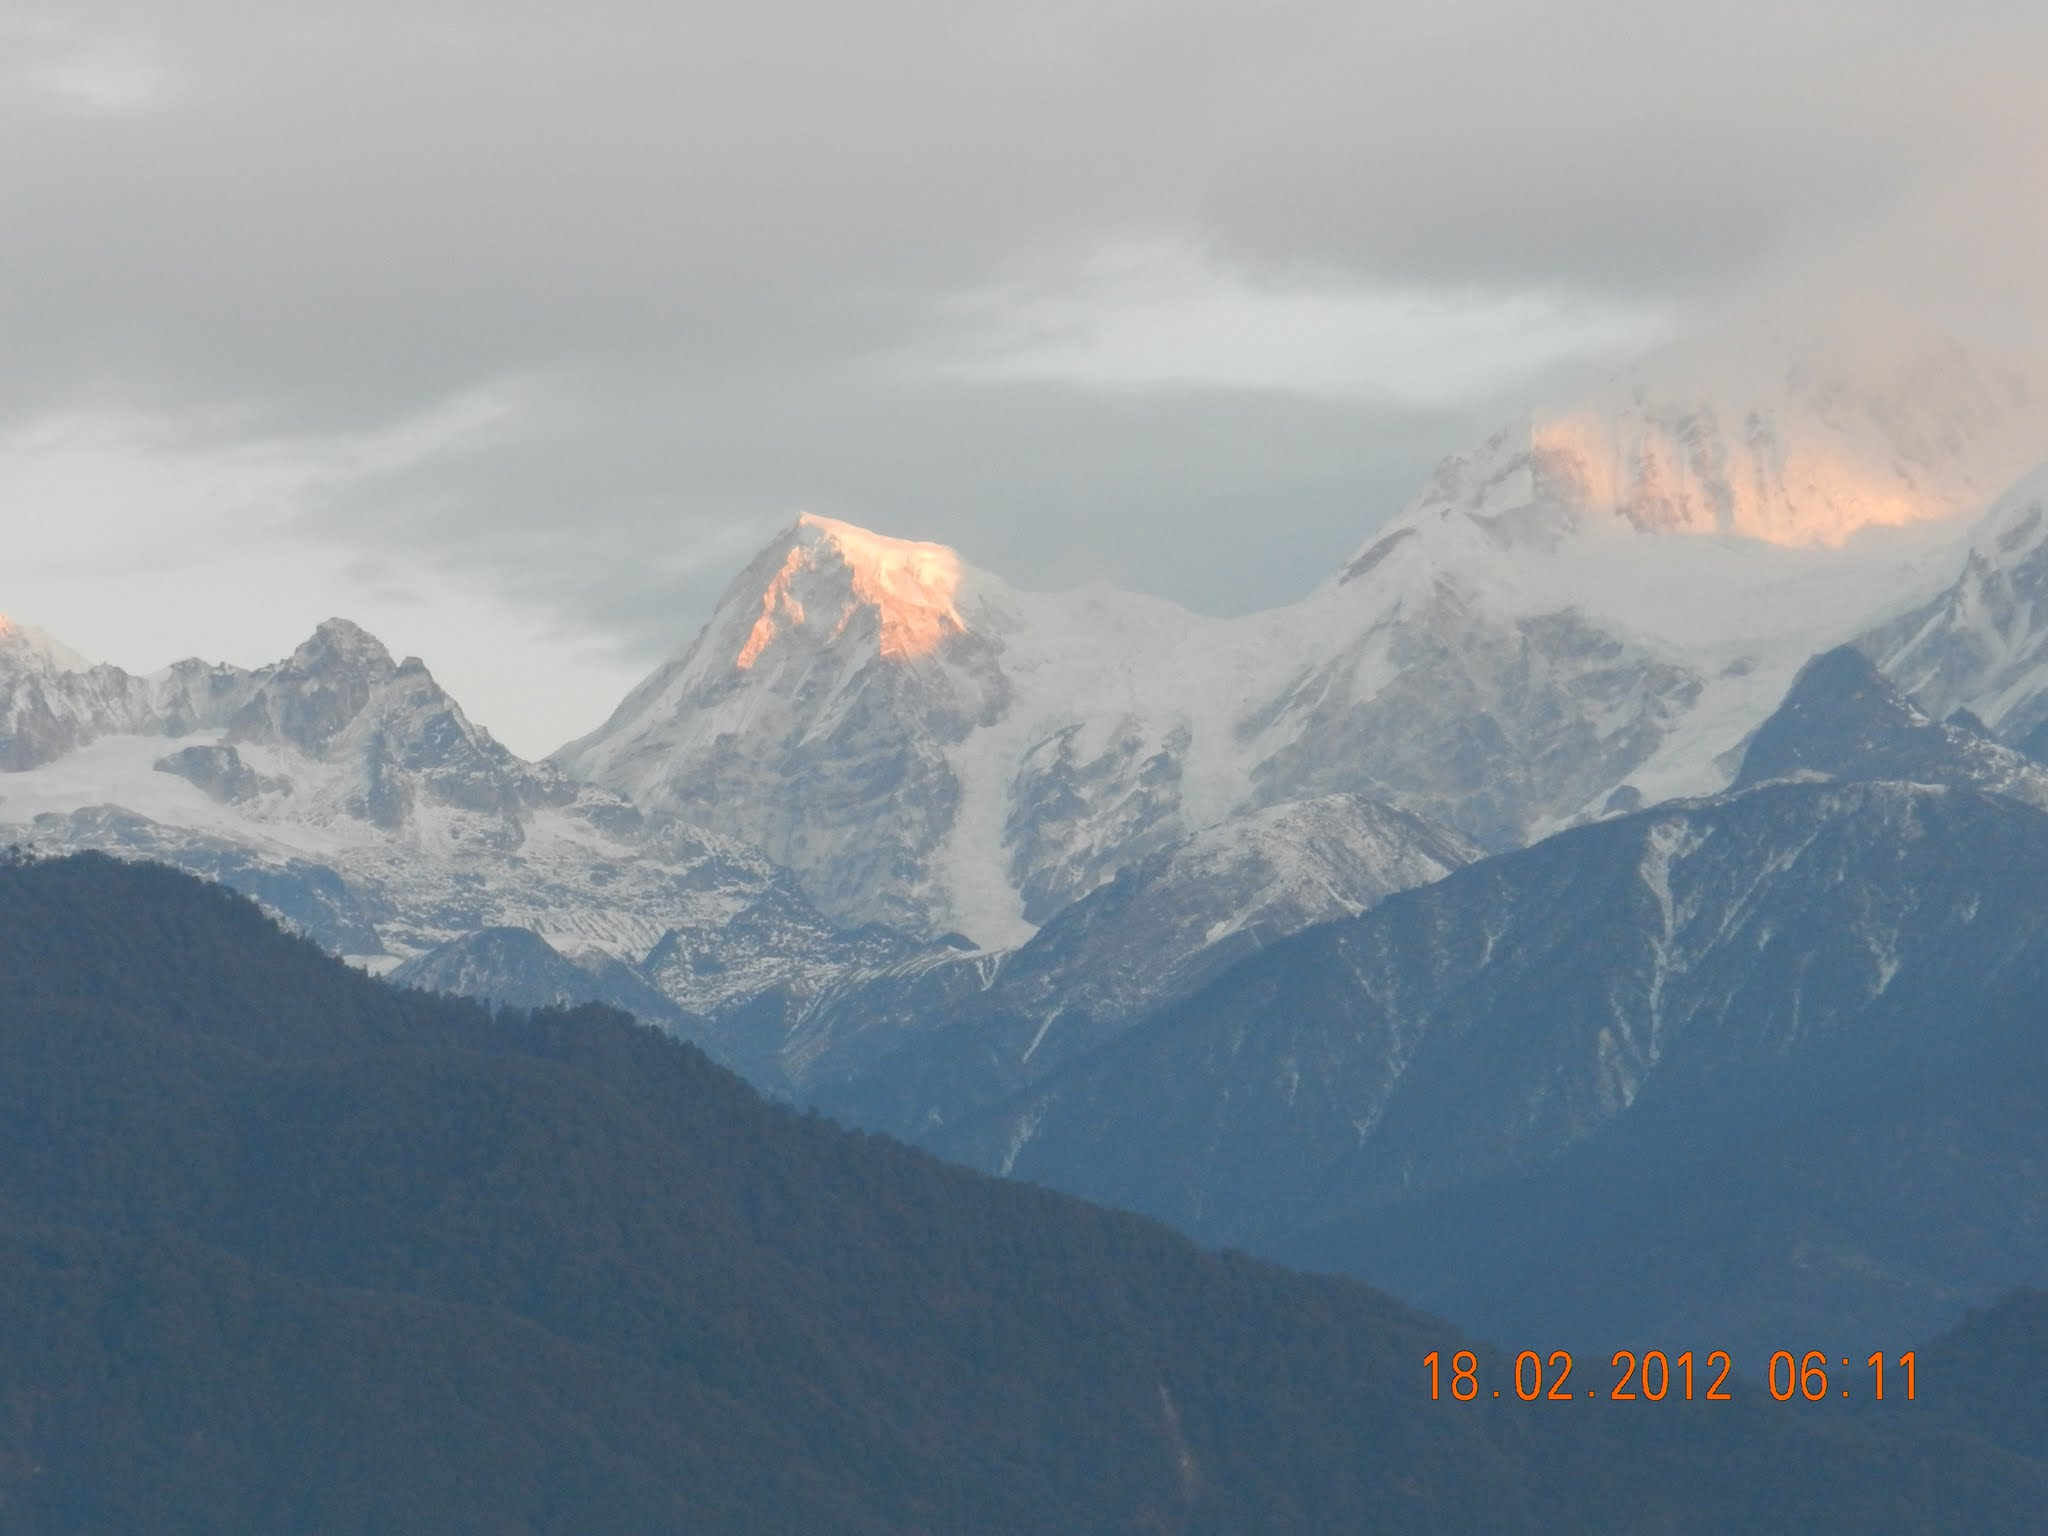 View of Kanchenjunga at Sunrise from Pelling